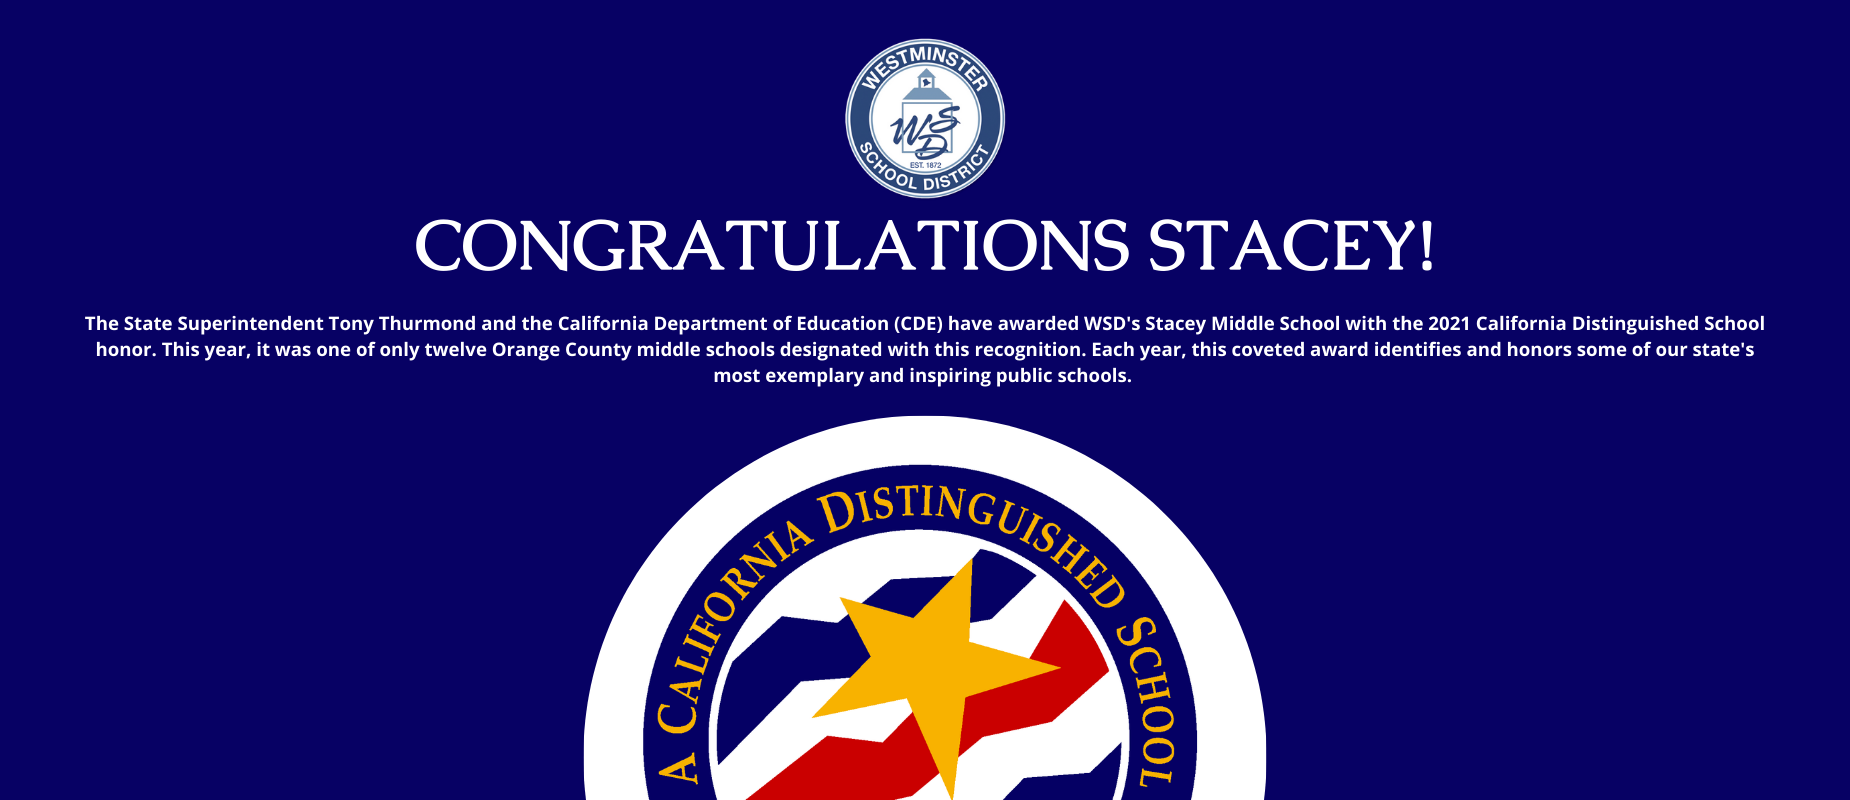 Stacey Middle School is a California Distinguished School